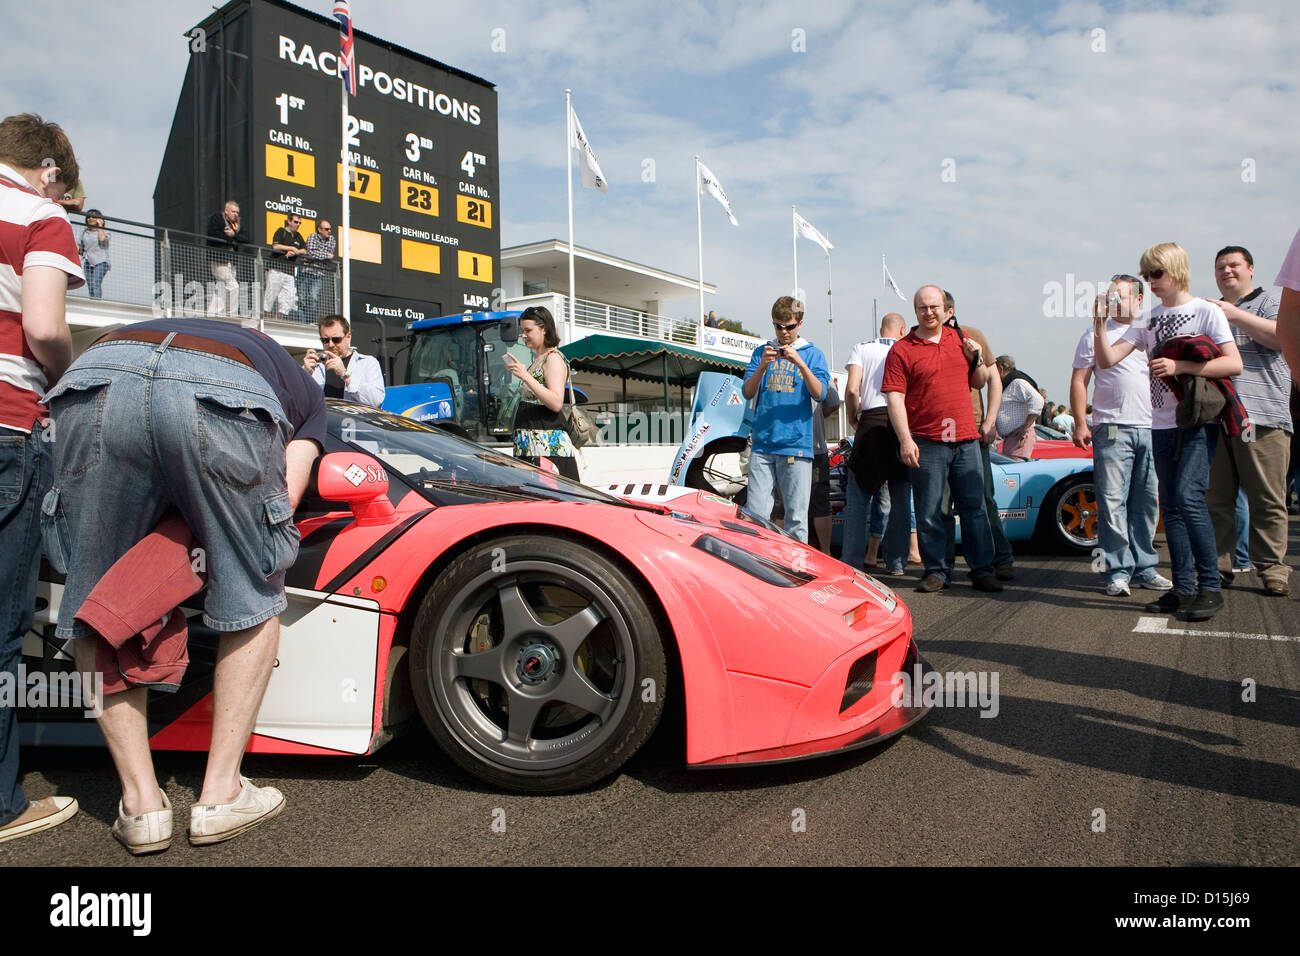 A crowd of people looking at a pink supercar at a car show. Stock Photo